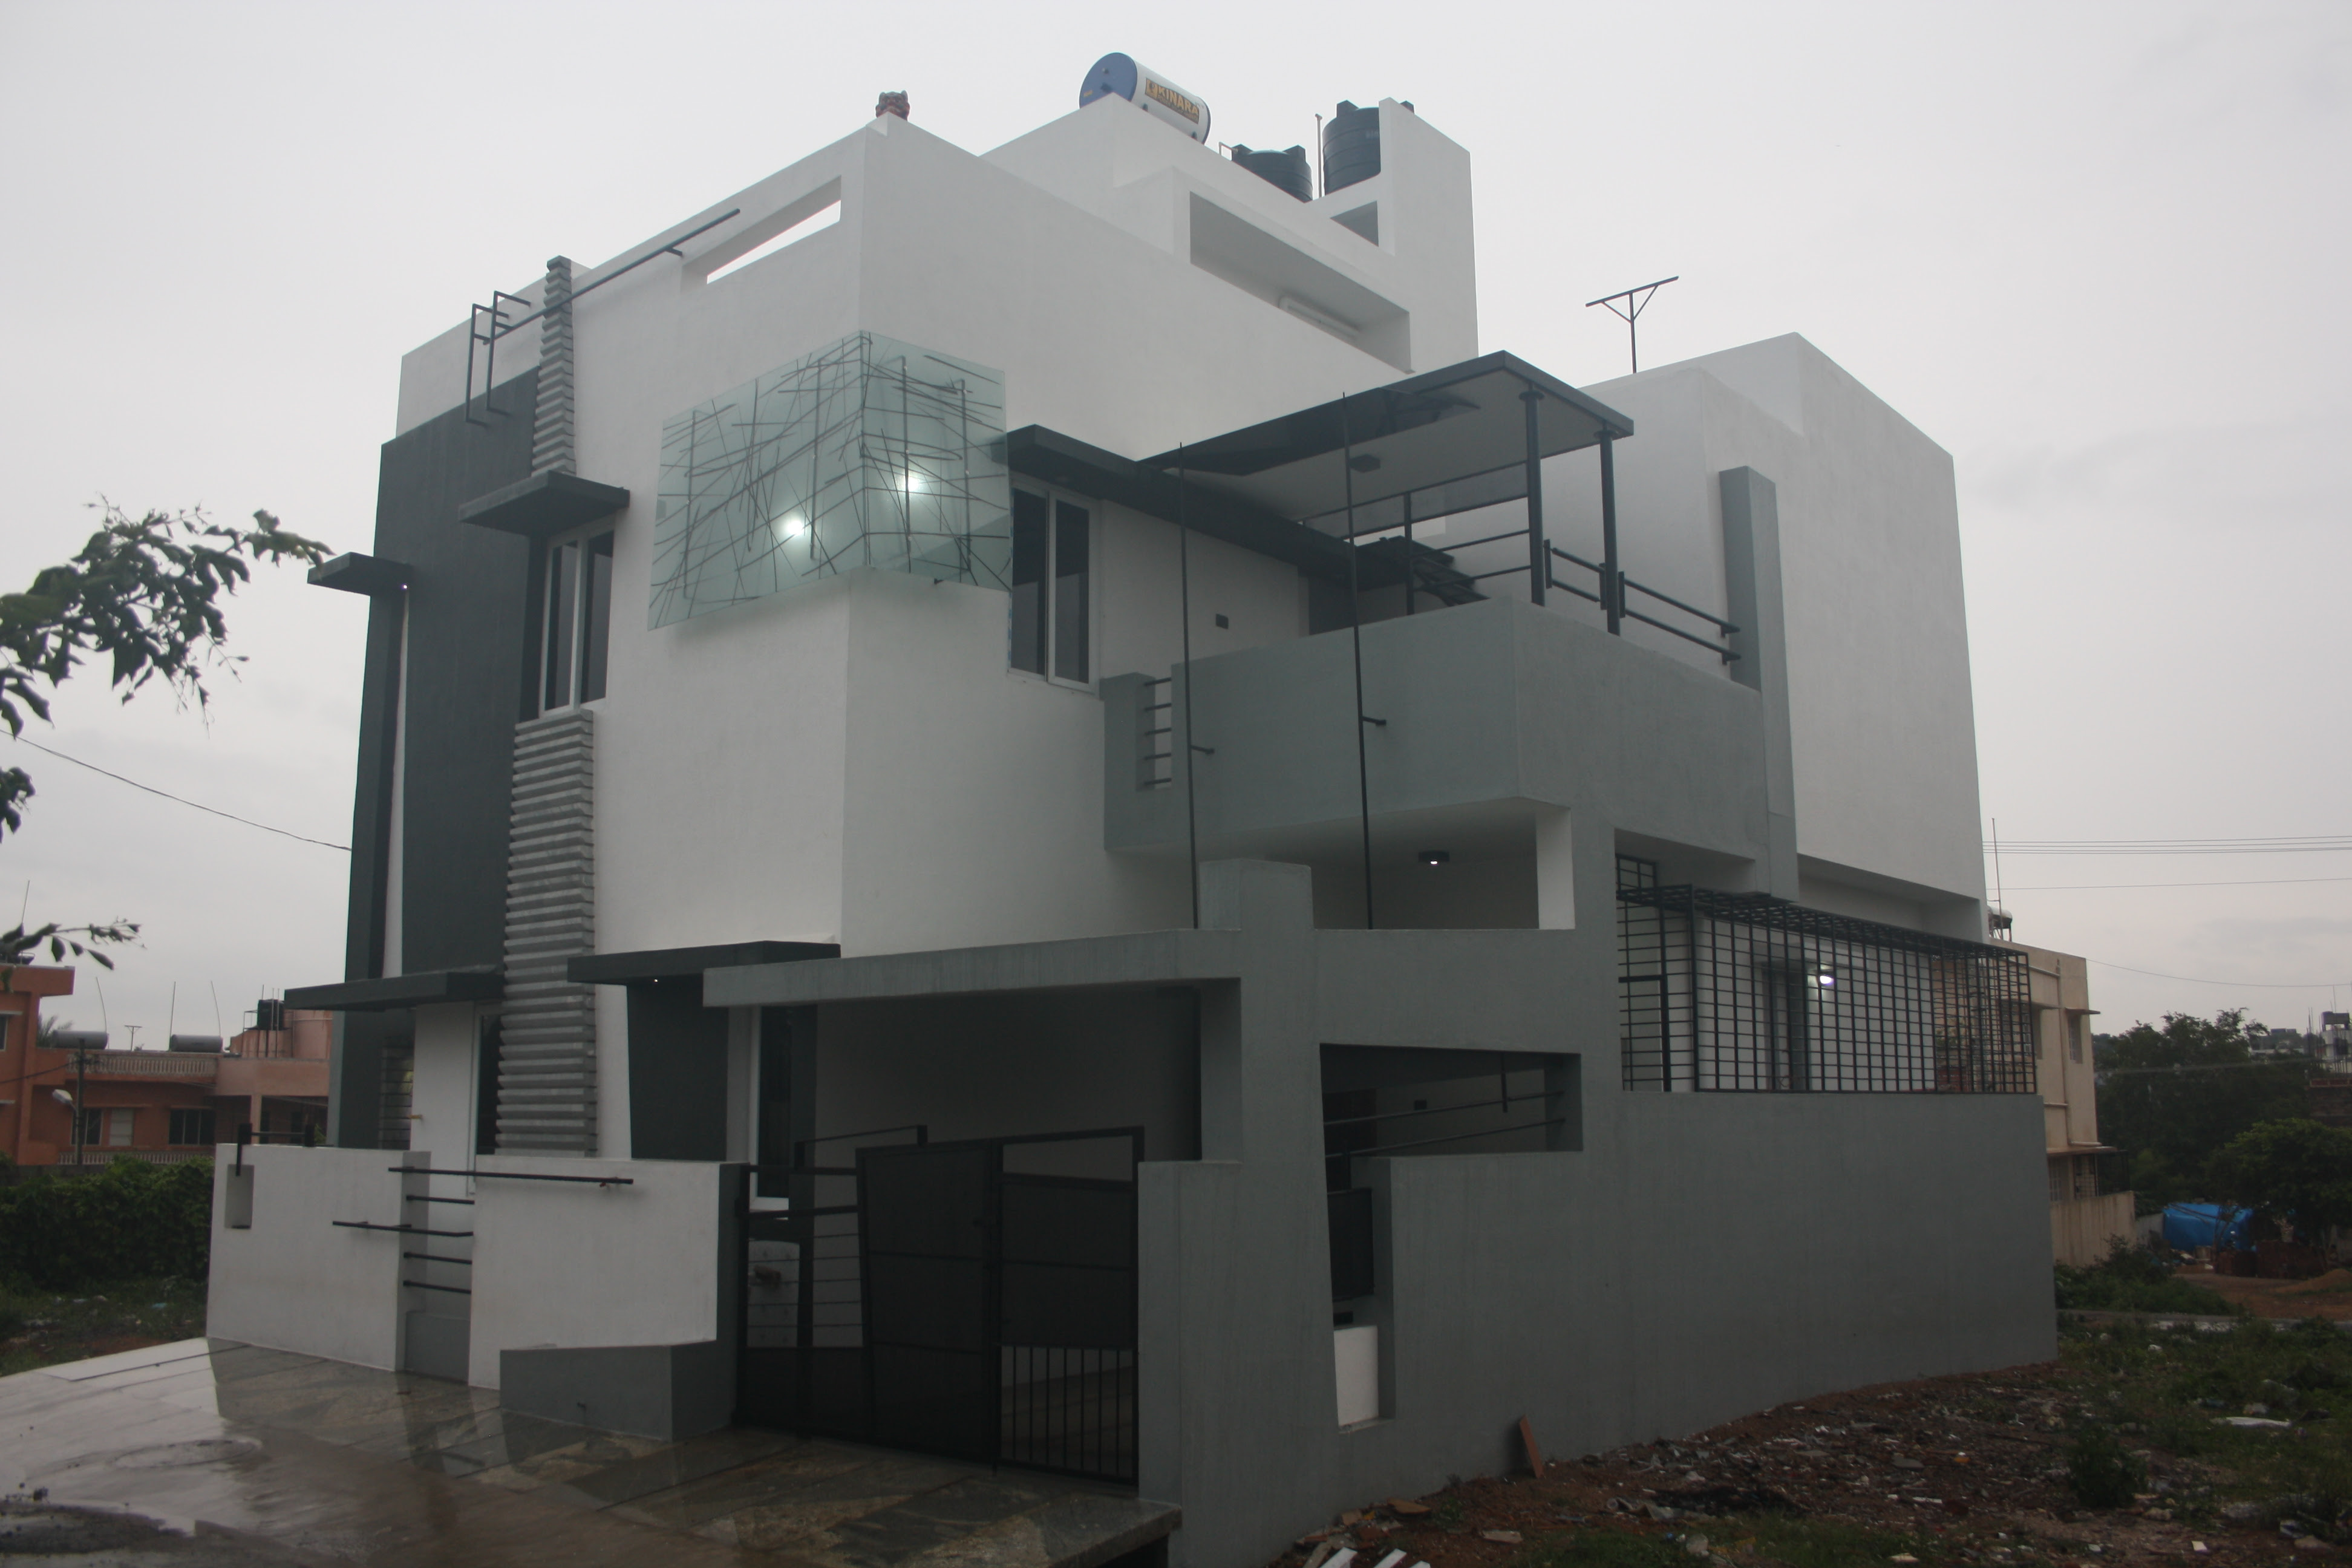 Need 2BHK house plan in 1000 sqft area. Total size 40\u0026quot;x30\u0026quot;.